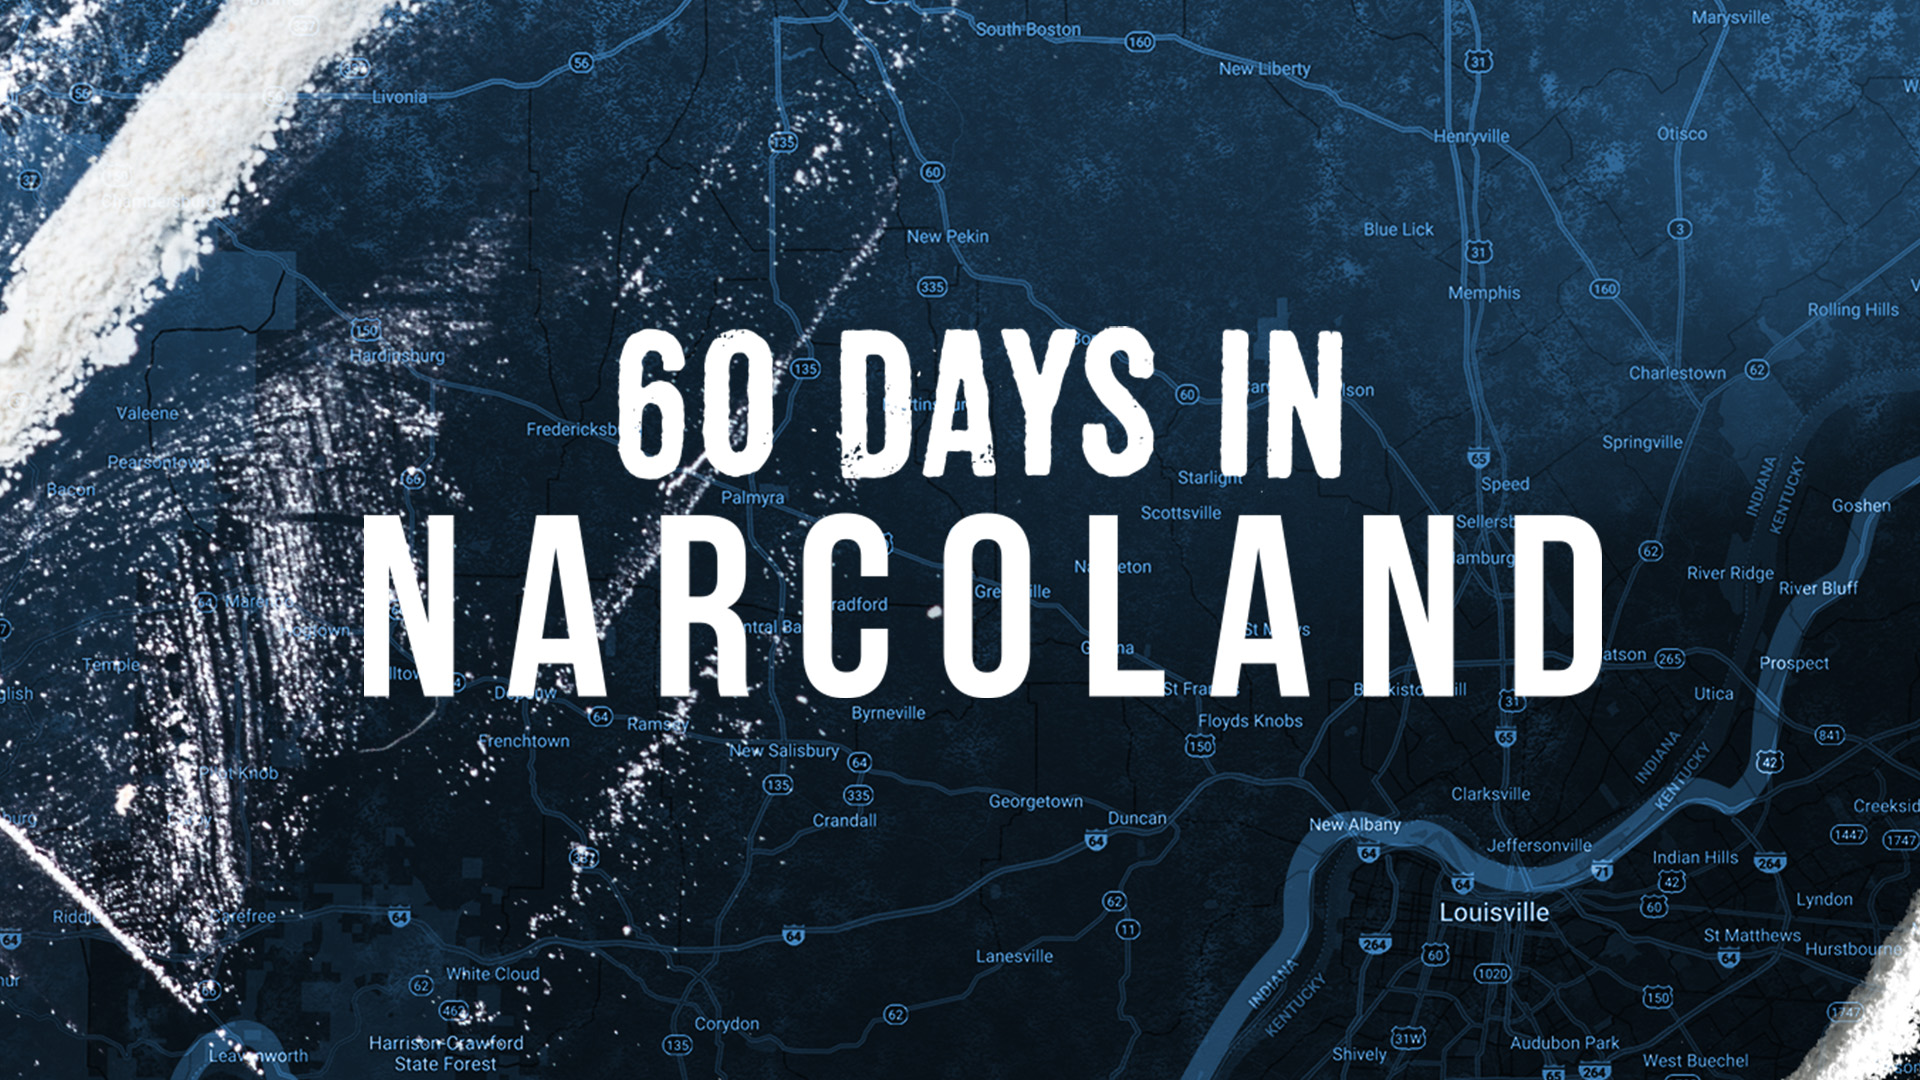 60 Days In: Narcoland Full Episodes, Video & More | A&E